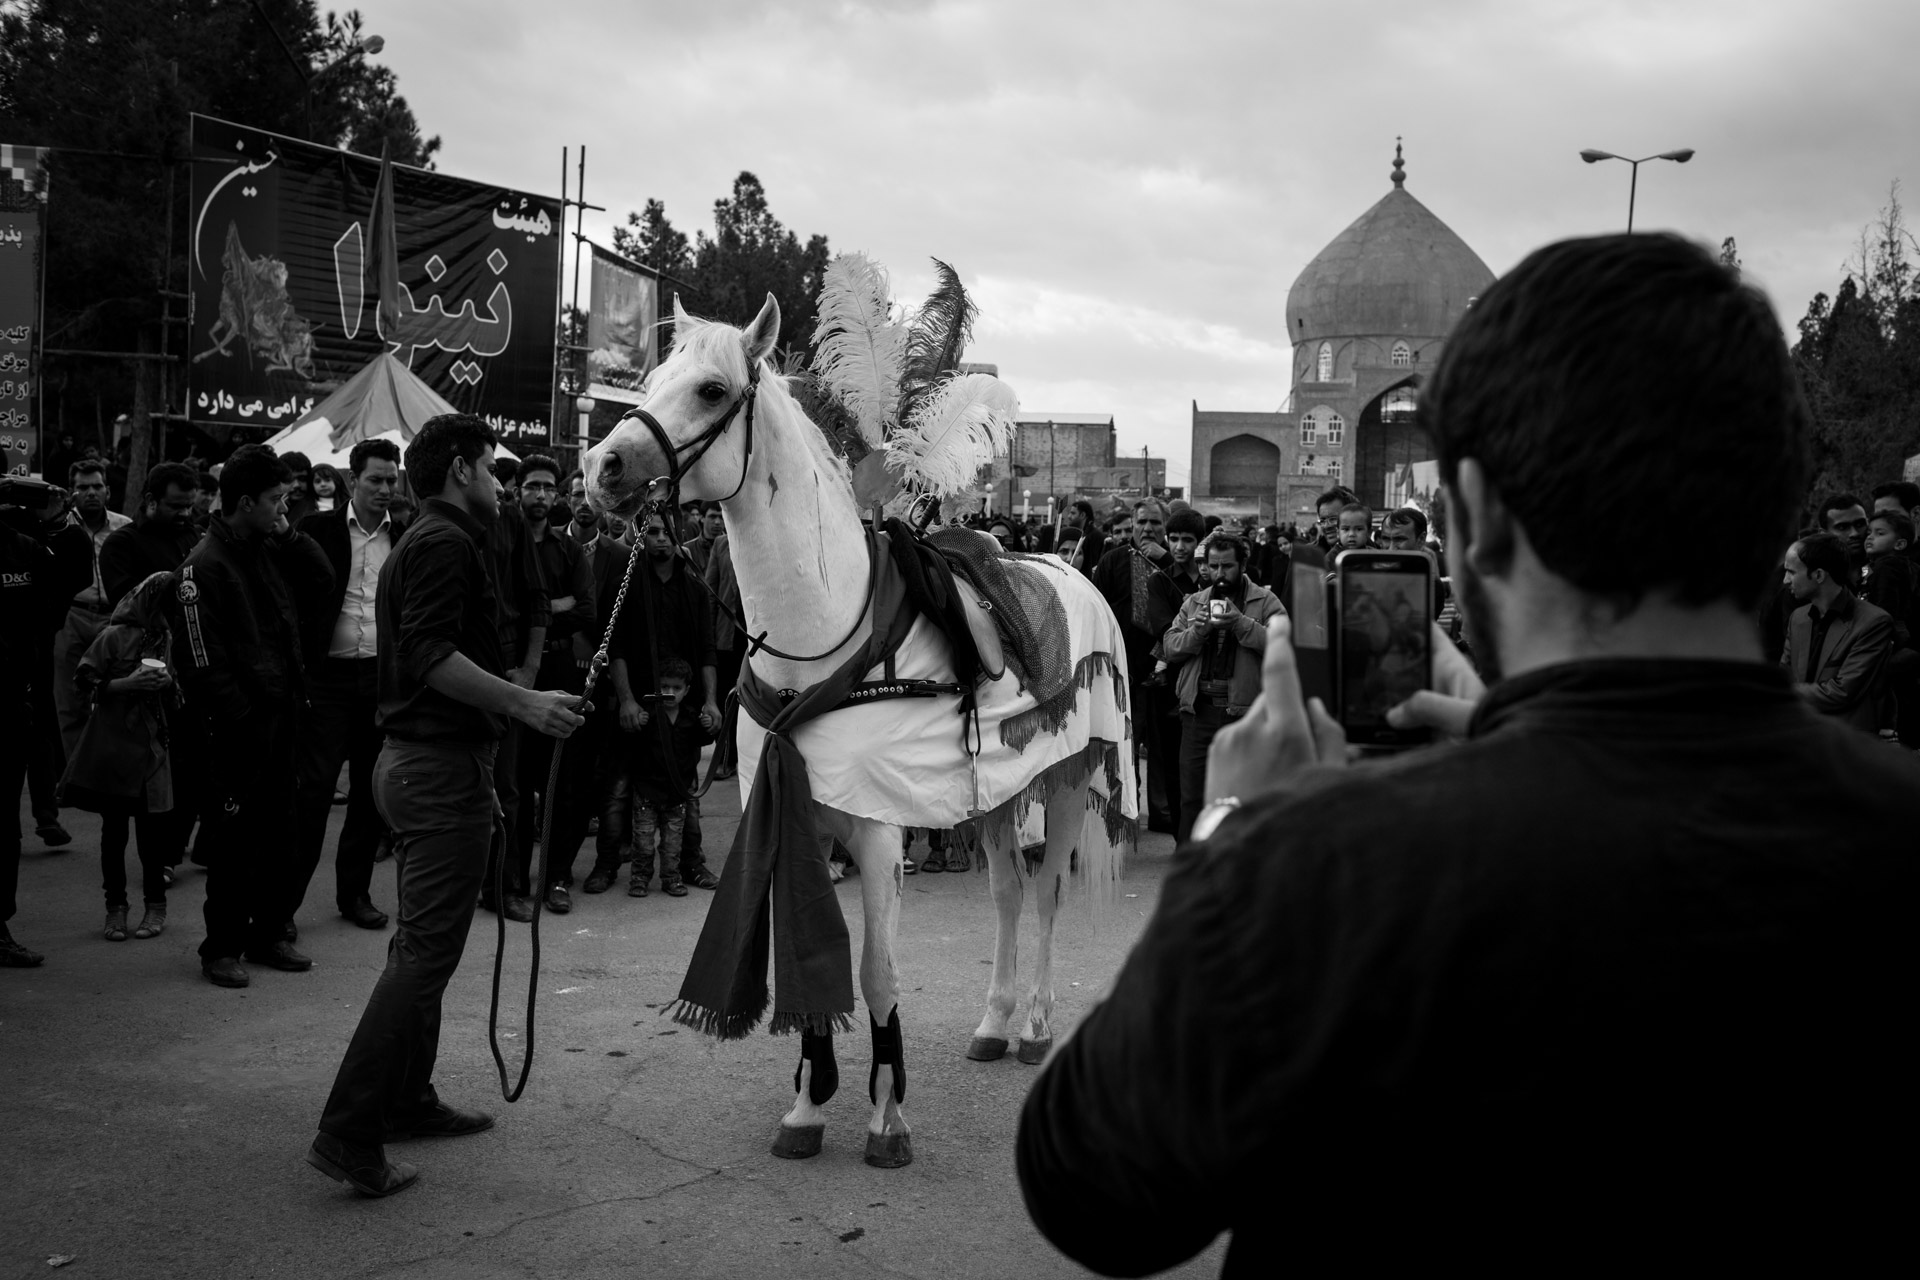 Zuljanah, the horse of Imam Hussain, is always portrayed wounded with blood stains, like its owner.